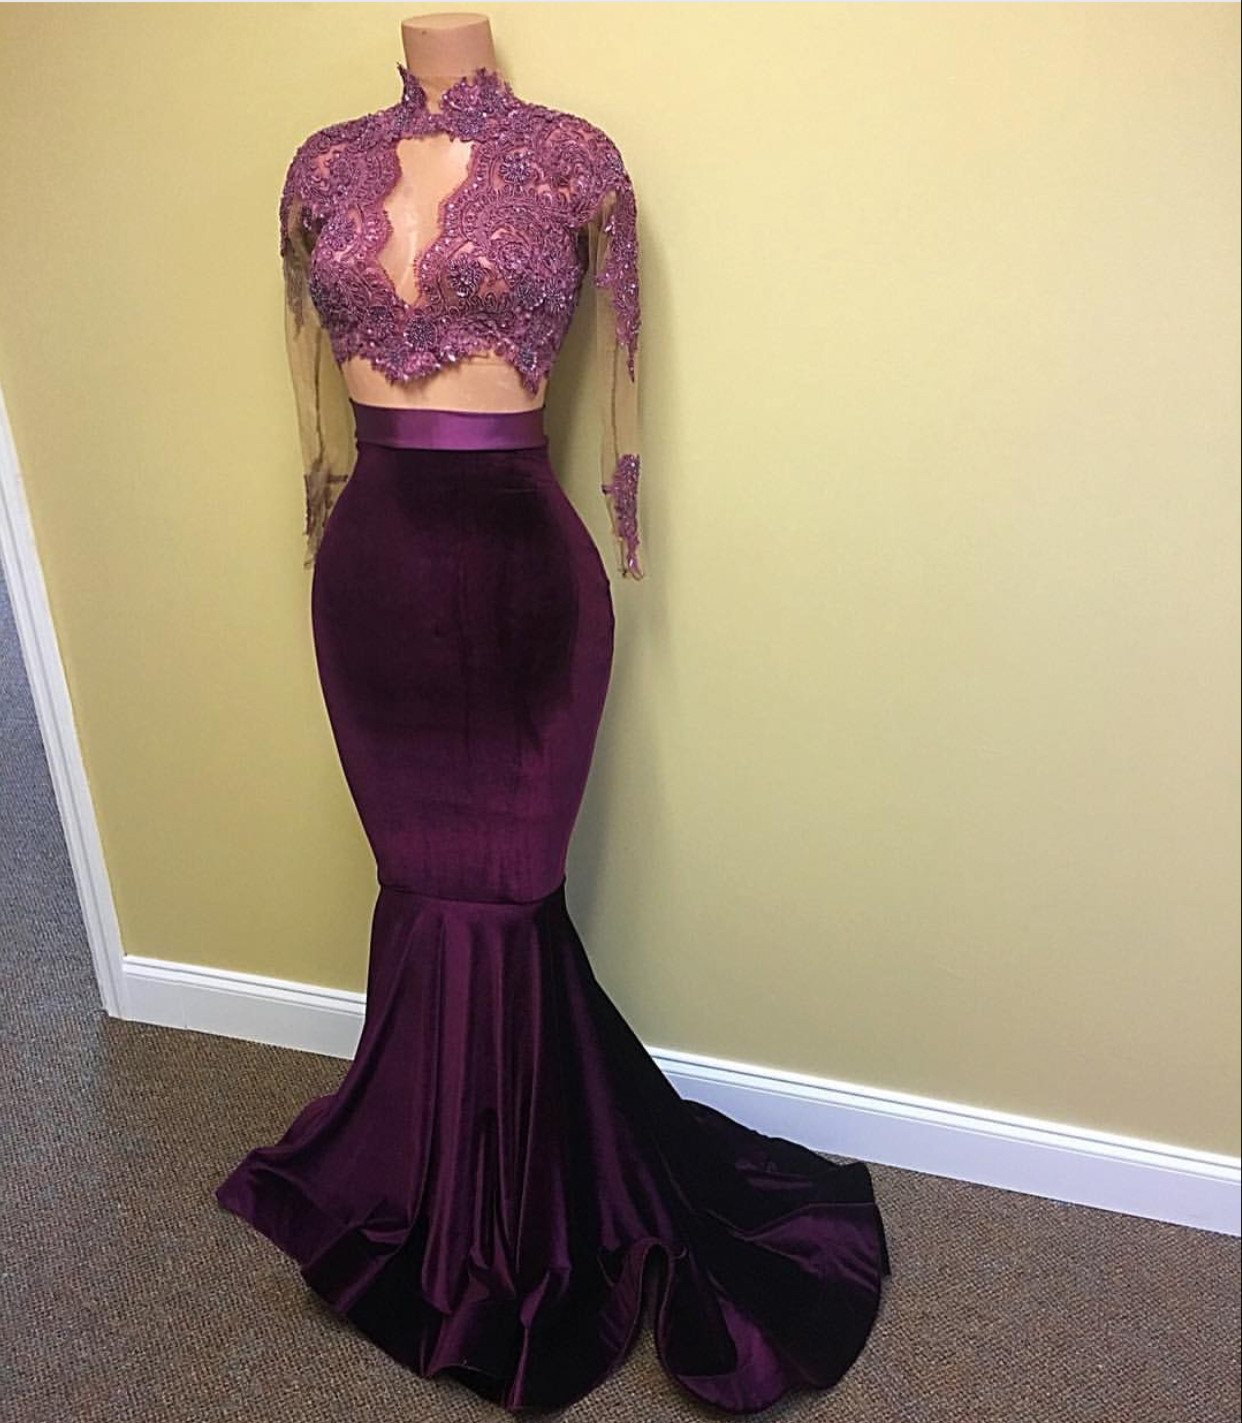 823197038c54 New Grape Mermaid Prom Dress Lace High Neck Long Sleeves Velvet Evening  Gowns